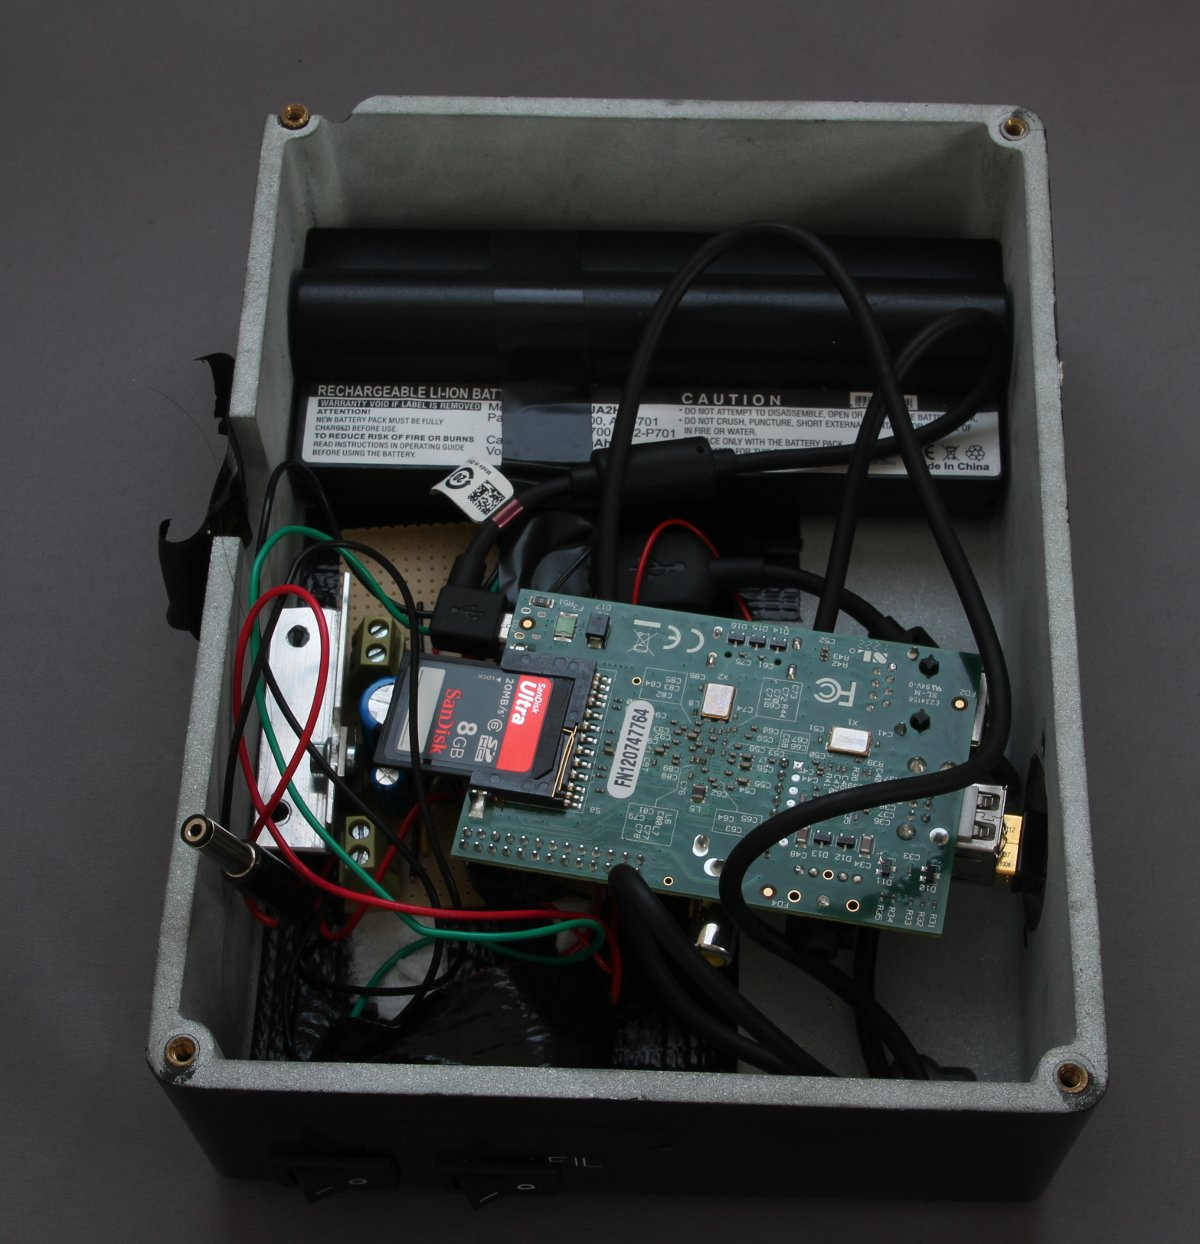 This Jen Is The Internet Wiring Box Inside A Laptop Battery Voltage Regulator Circuit Raspberry Pi